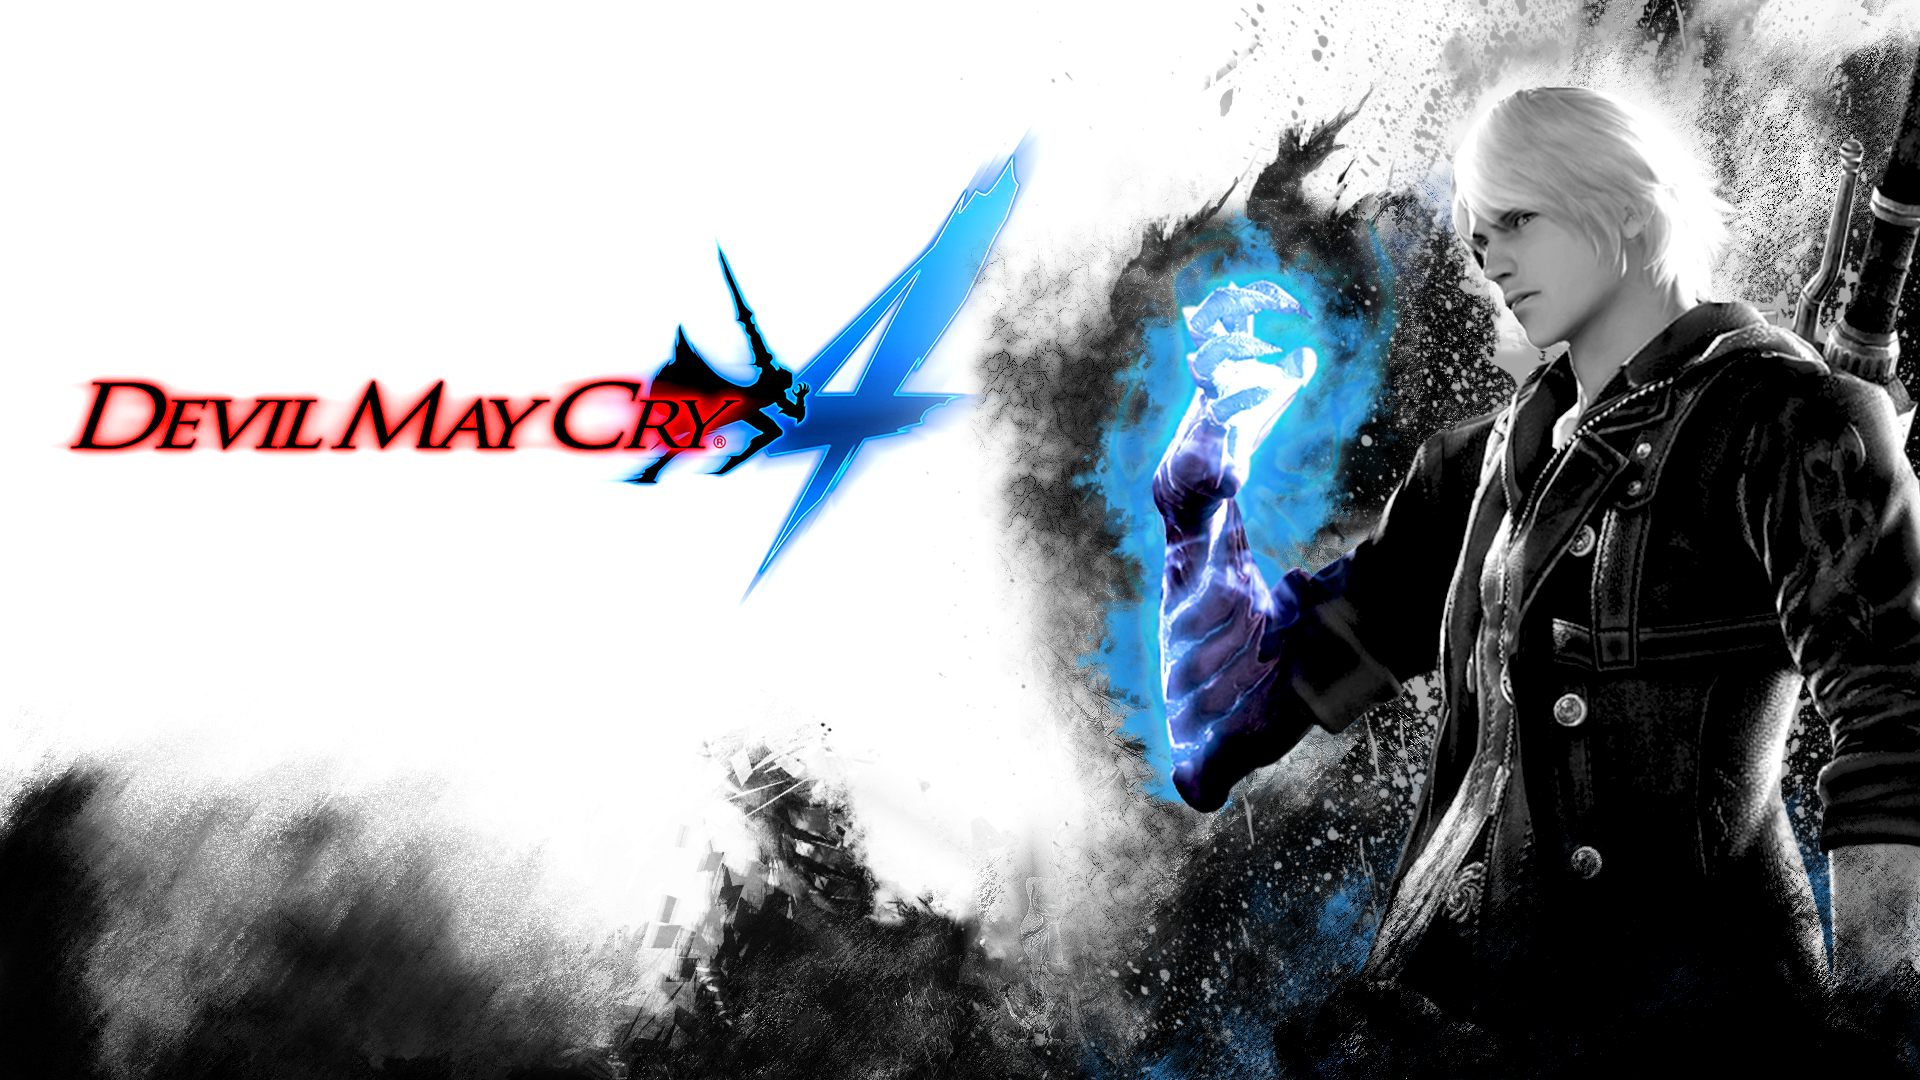 6 devil may cry 4 hd wallpapers | background images - wallpaper abyss